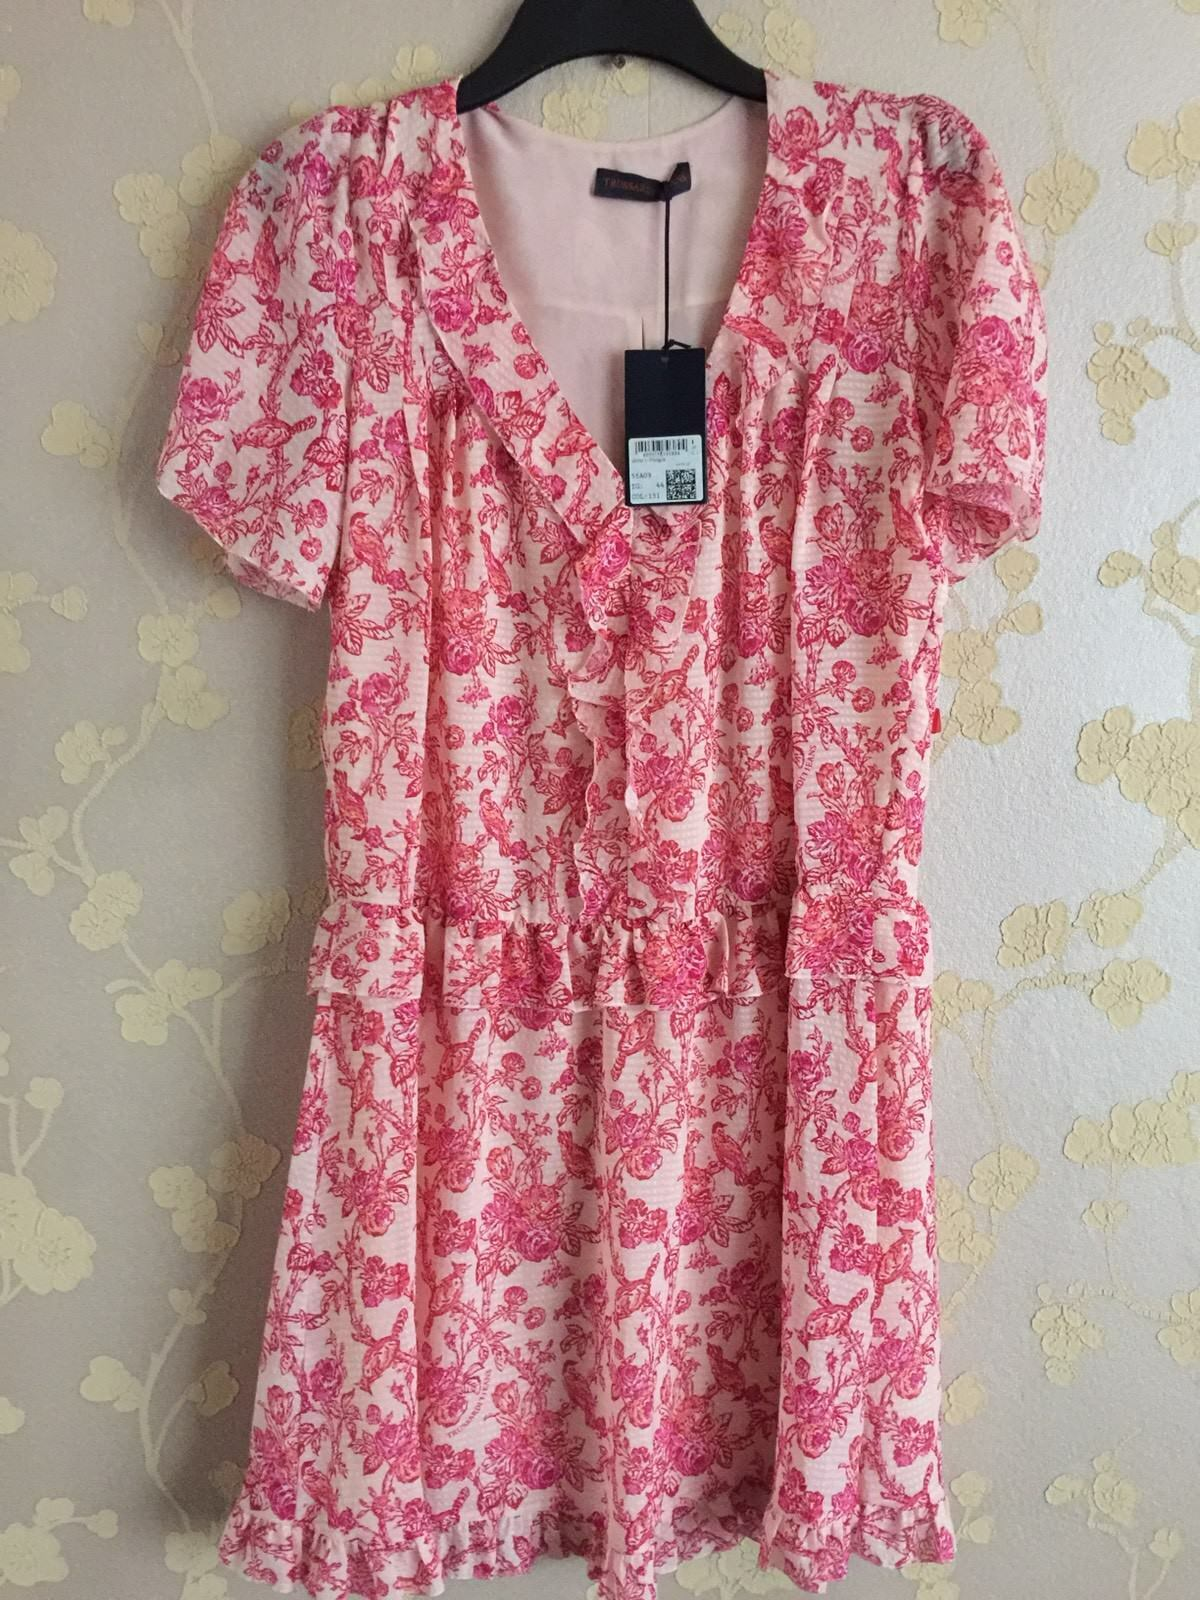 Trussardi Jeans Women's Pink Dress Size 44 12UK BNWT